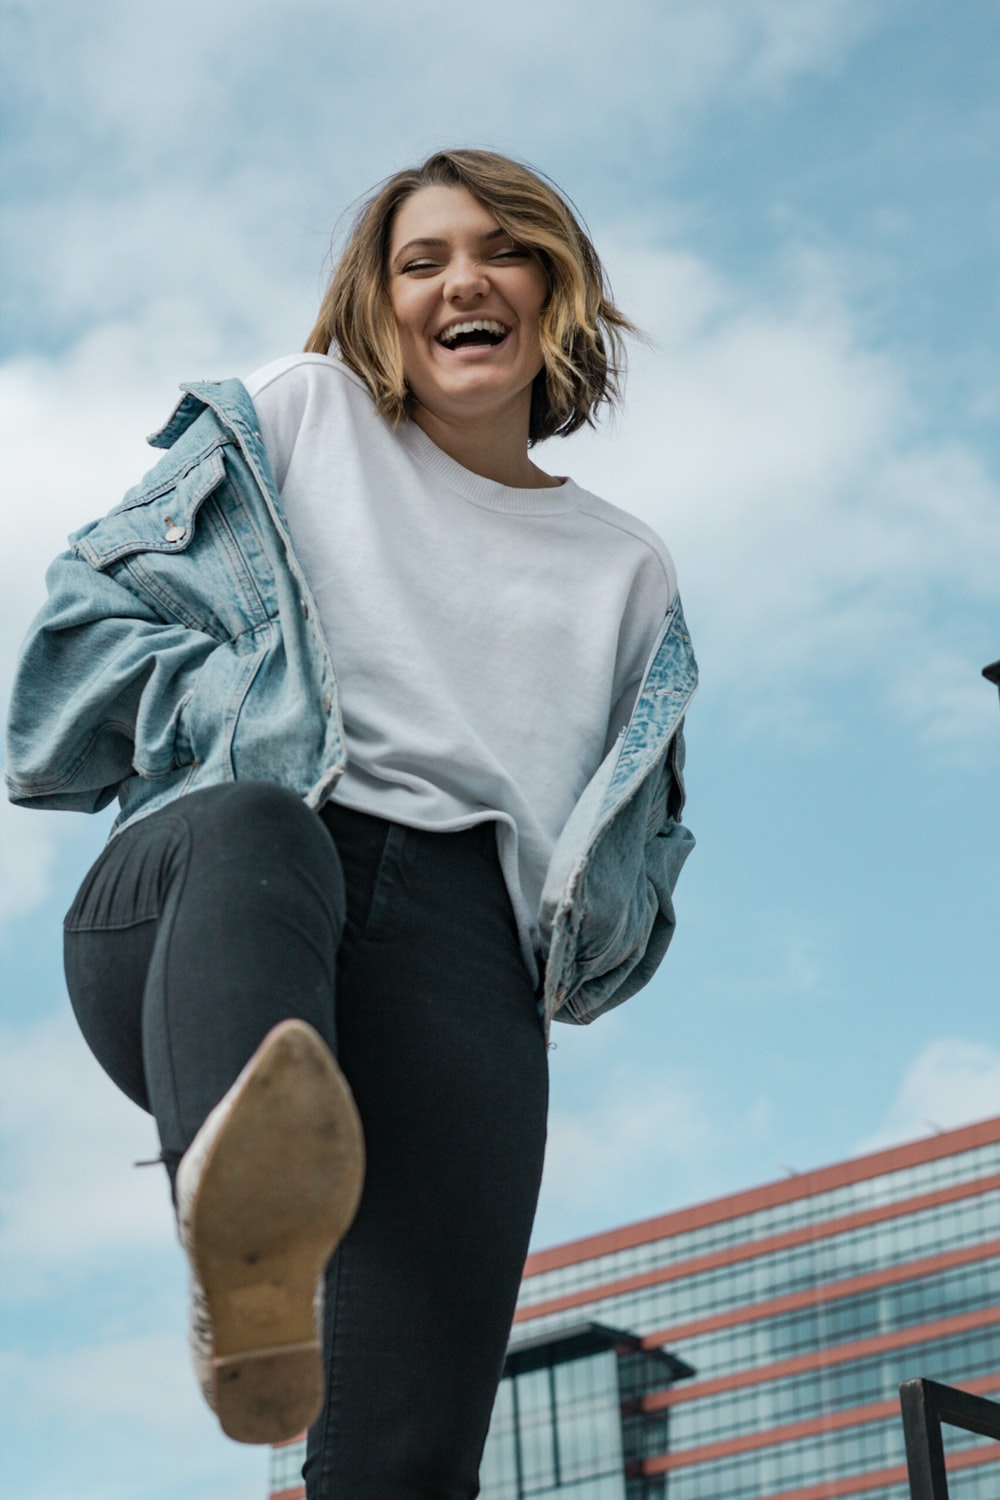 woman wearing white crew-neck t-shirt and blue denim jacket laughing while lifting right leg